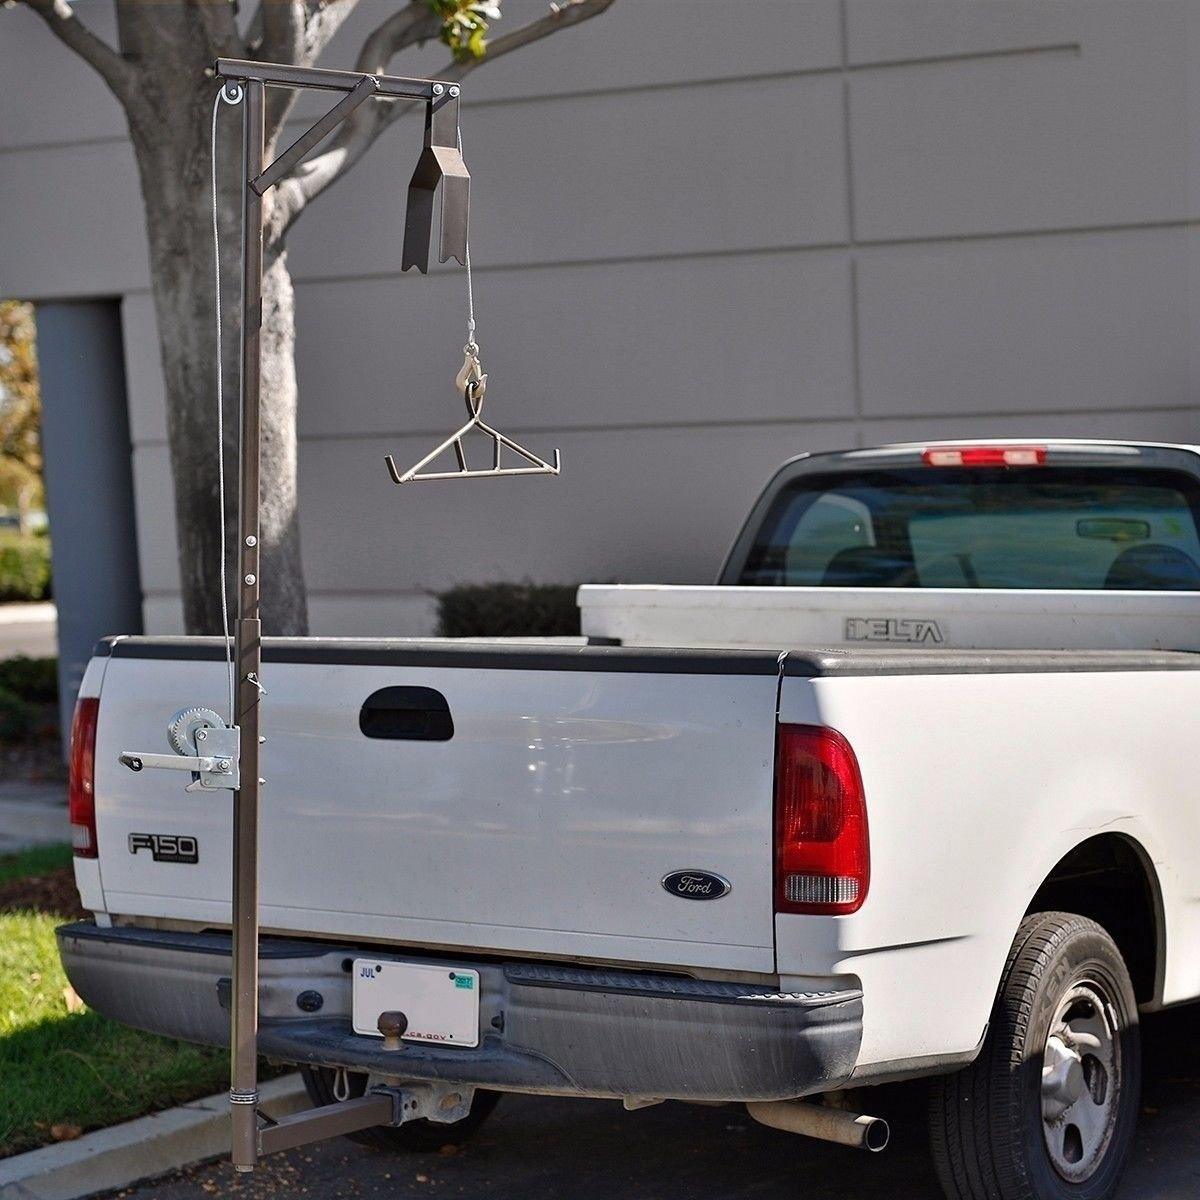 New MTN-G Hitch Mounted 400LB Big Game Hunting Deer Hoist...